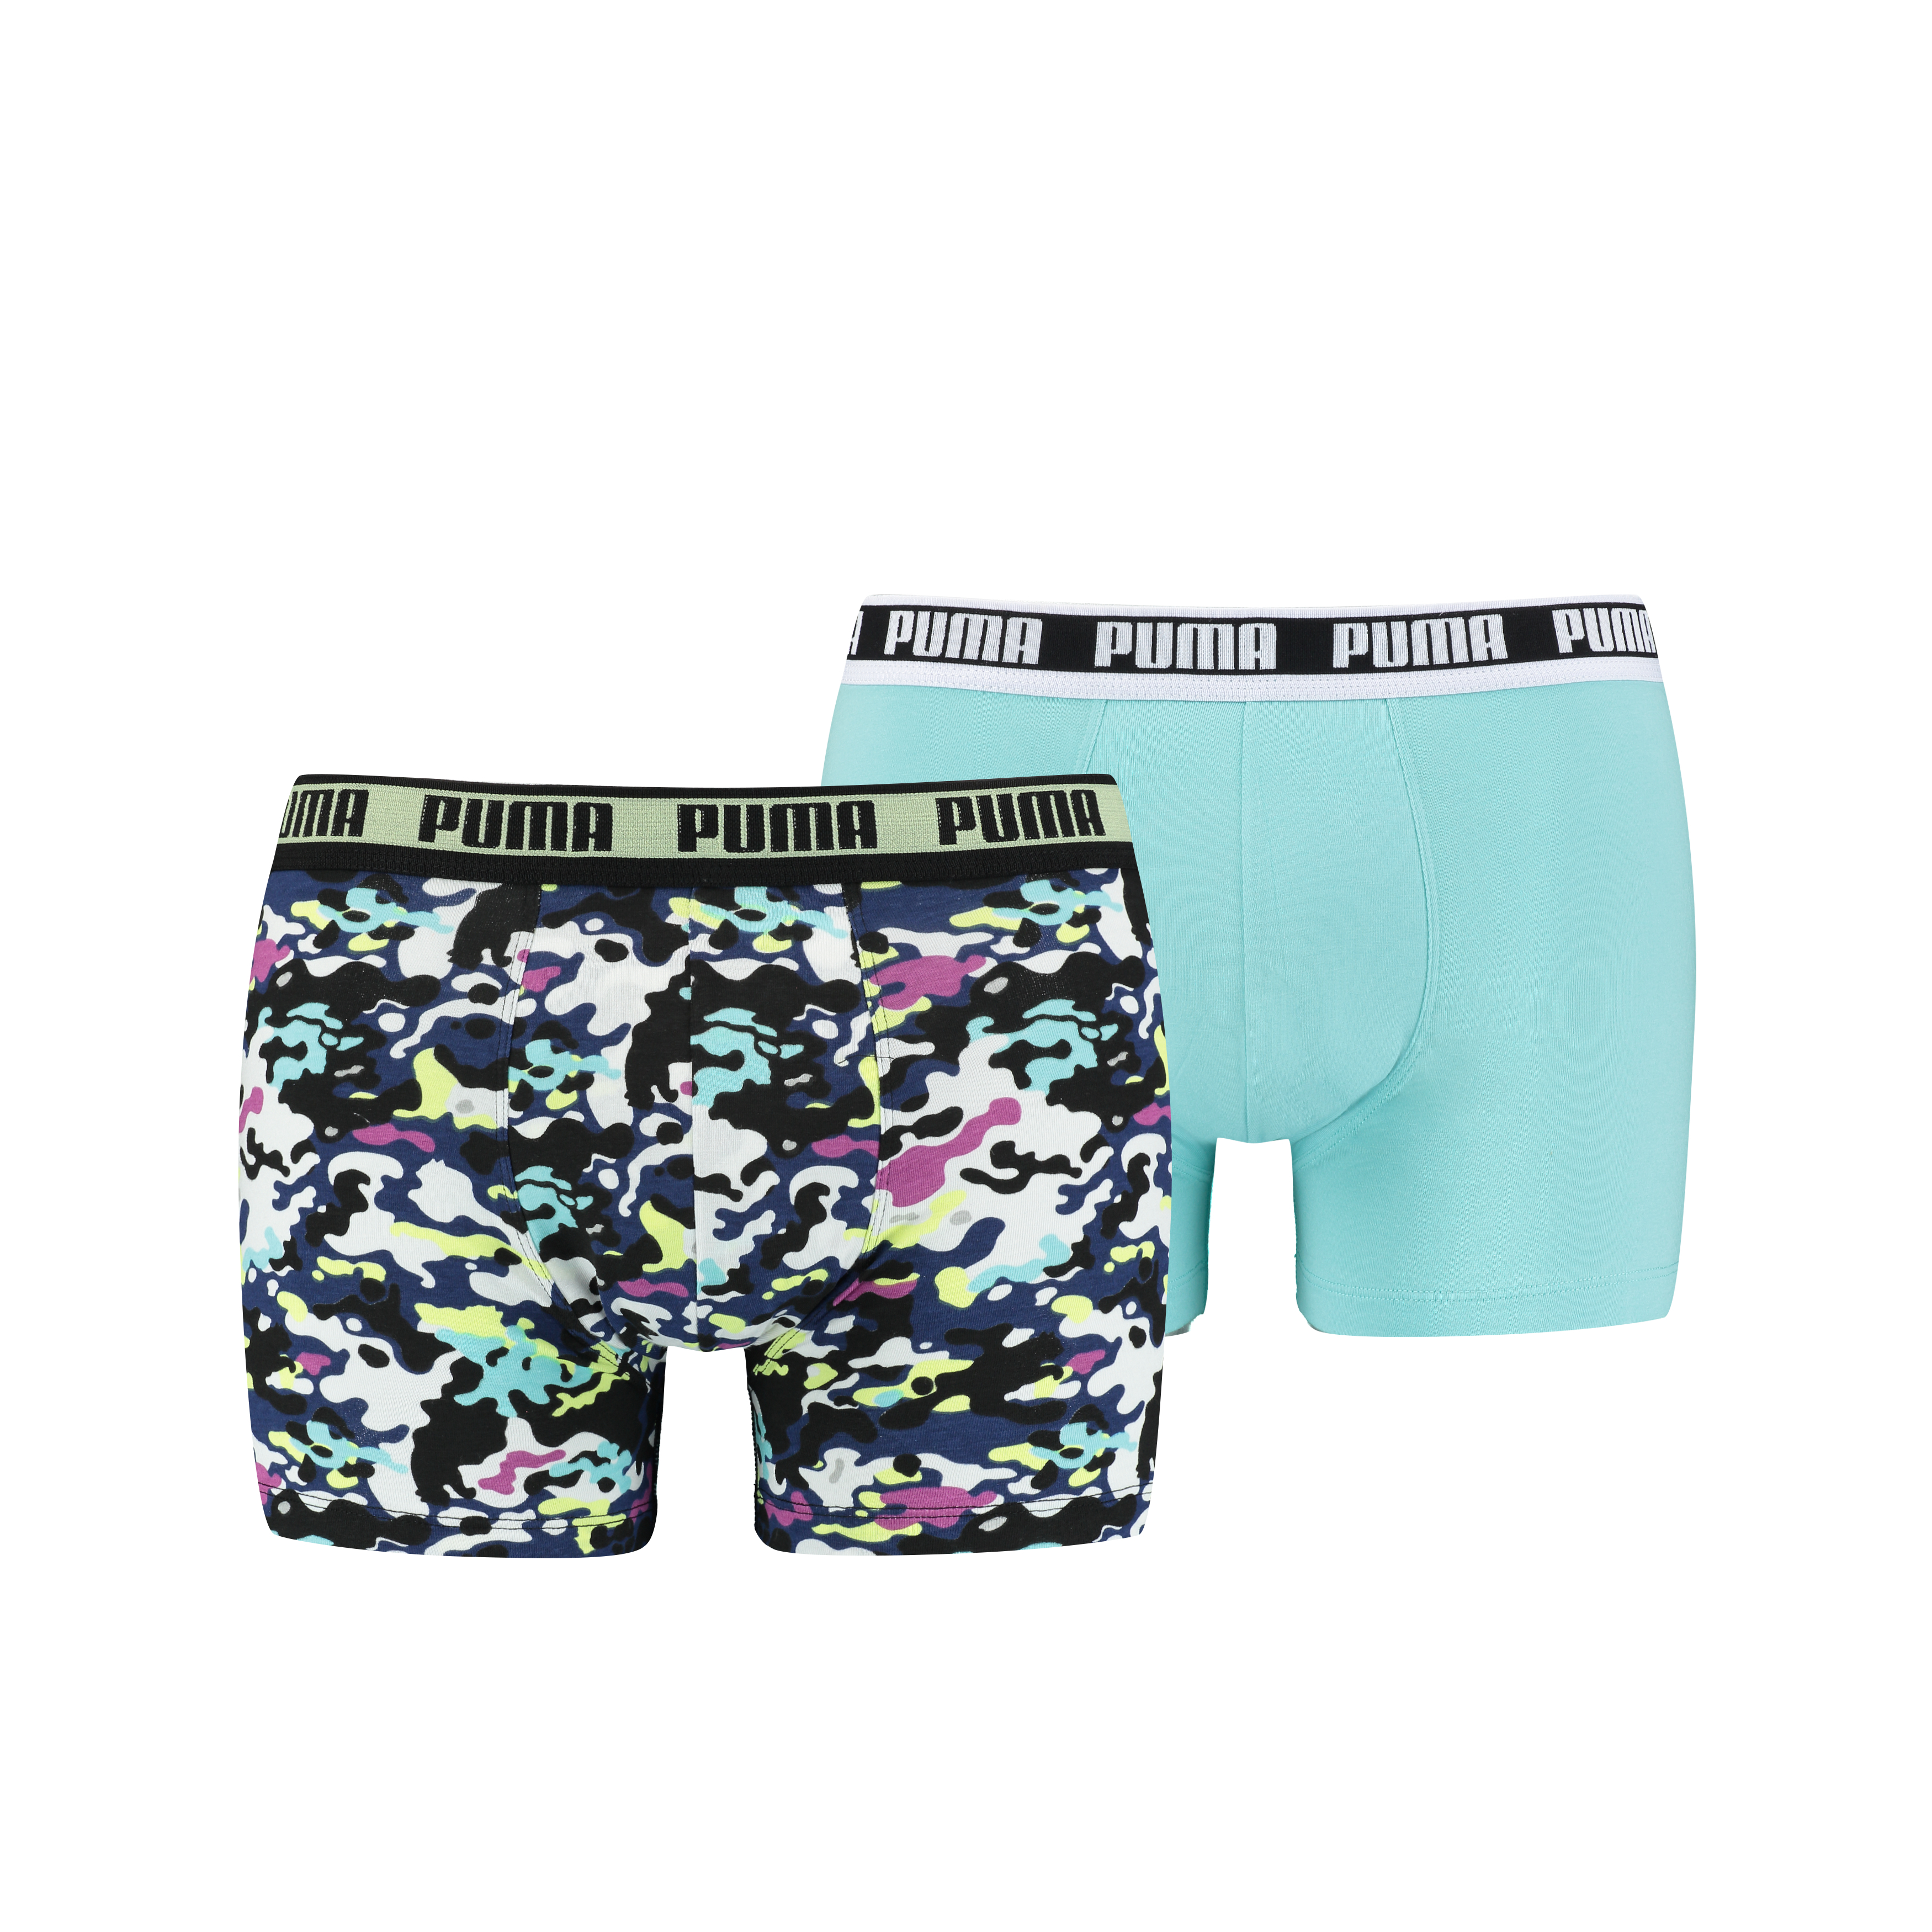 Puma Boxershorts Camo 2-pack Yellow/Blue-S